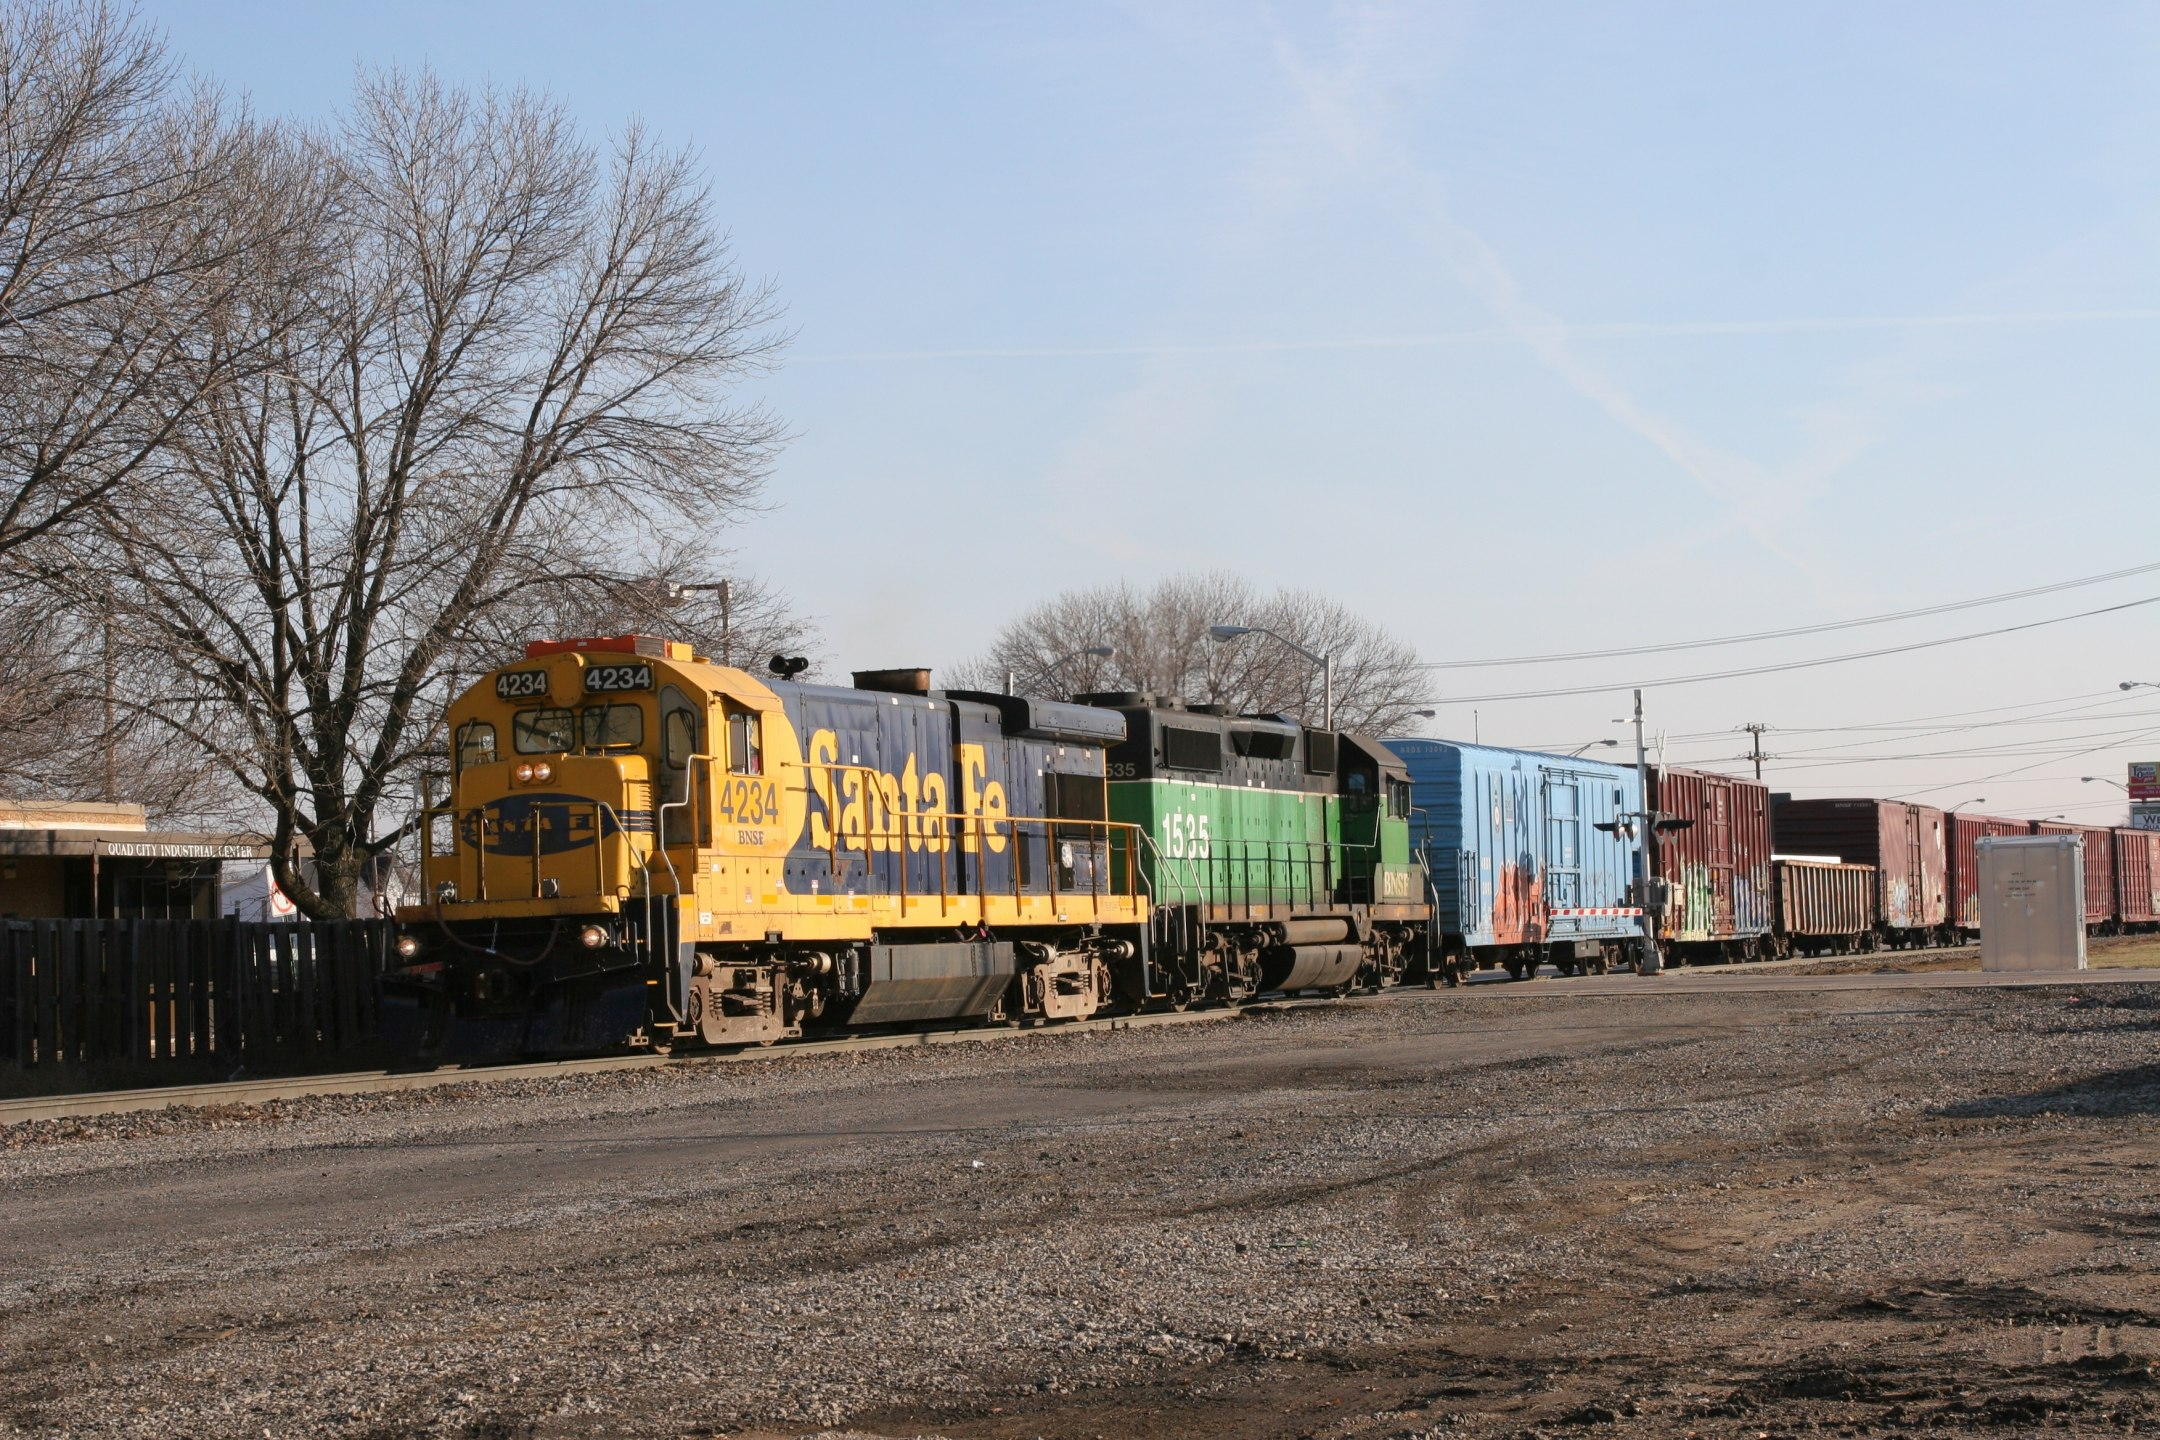 Oh, that's what we're waiting on...  It's the BNSF local job, lead by ex-ATSF B23-7 4234